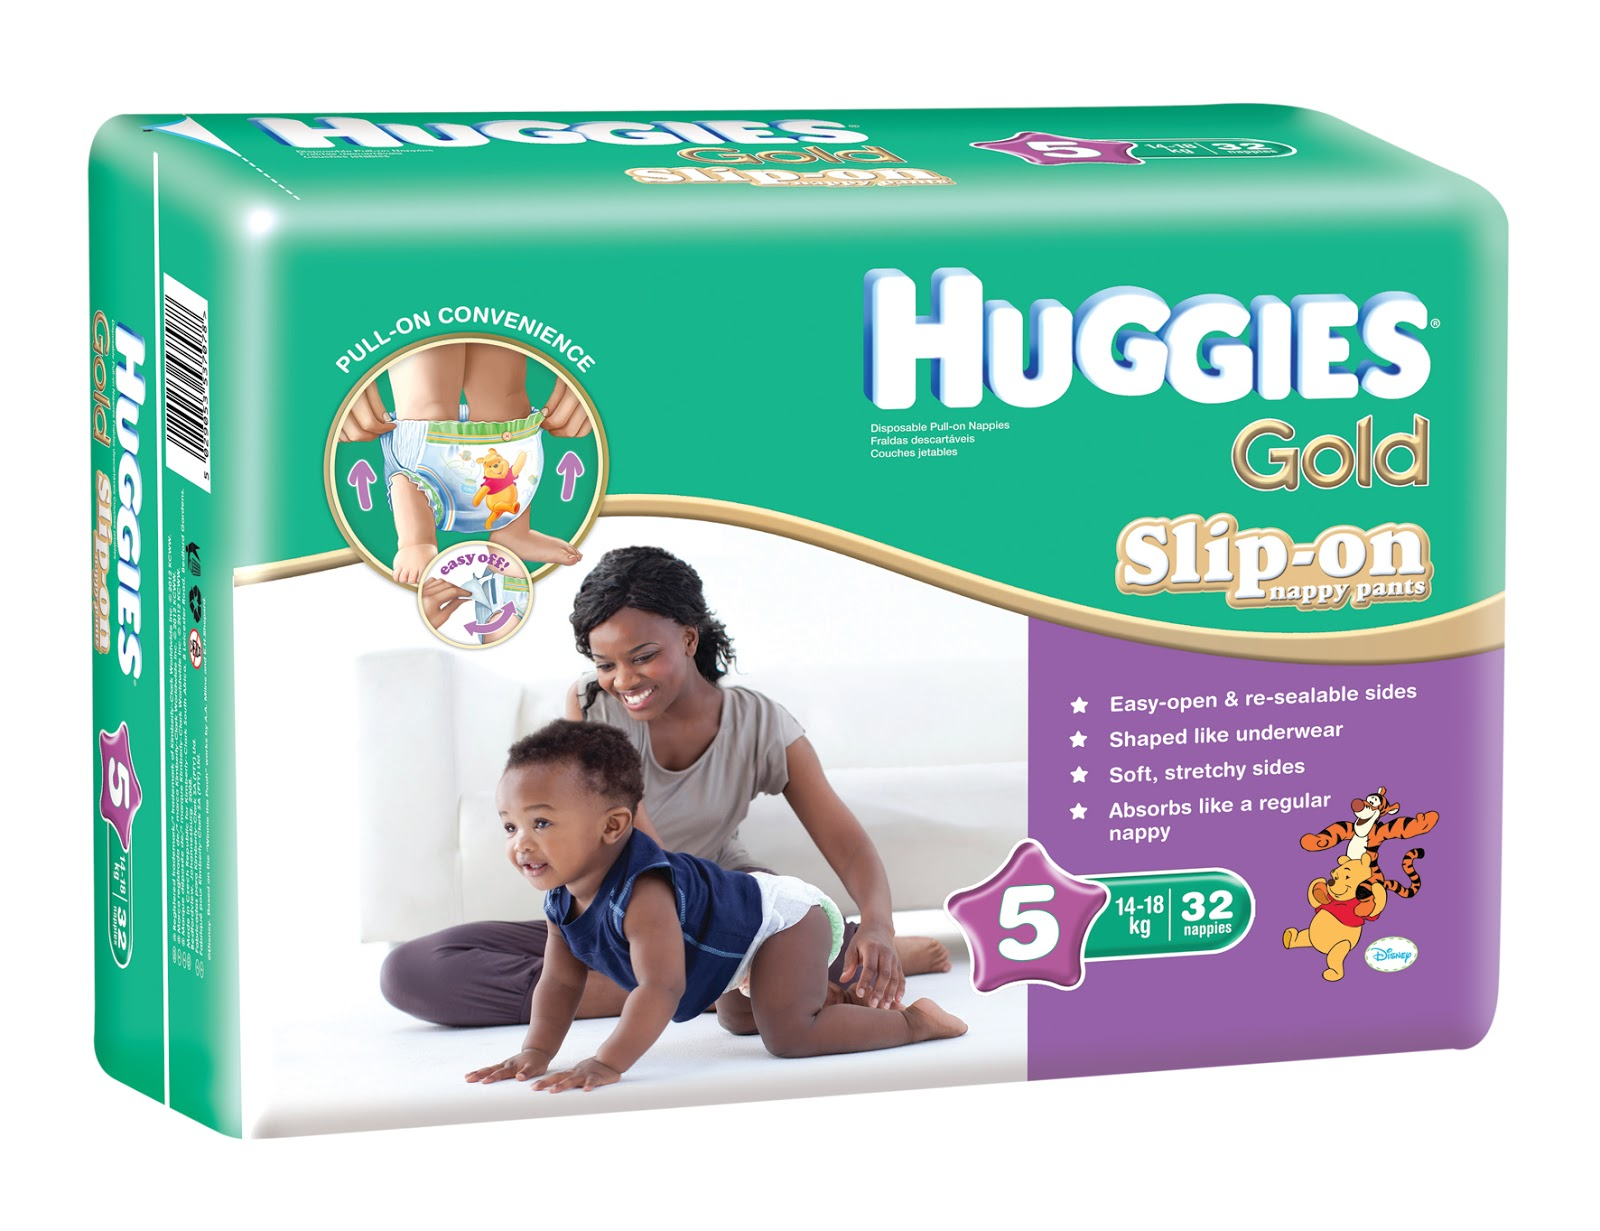 Huggies Baby Photos Division Of Global Affairs